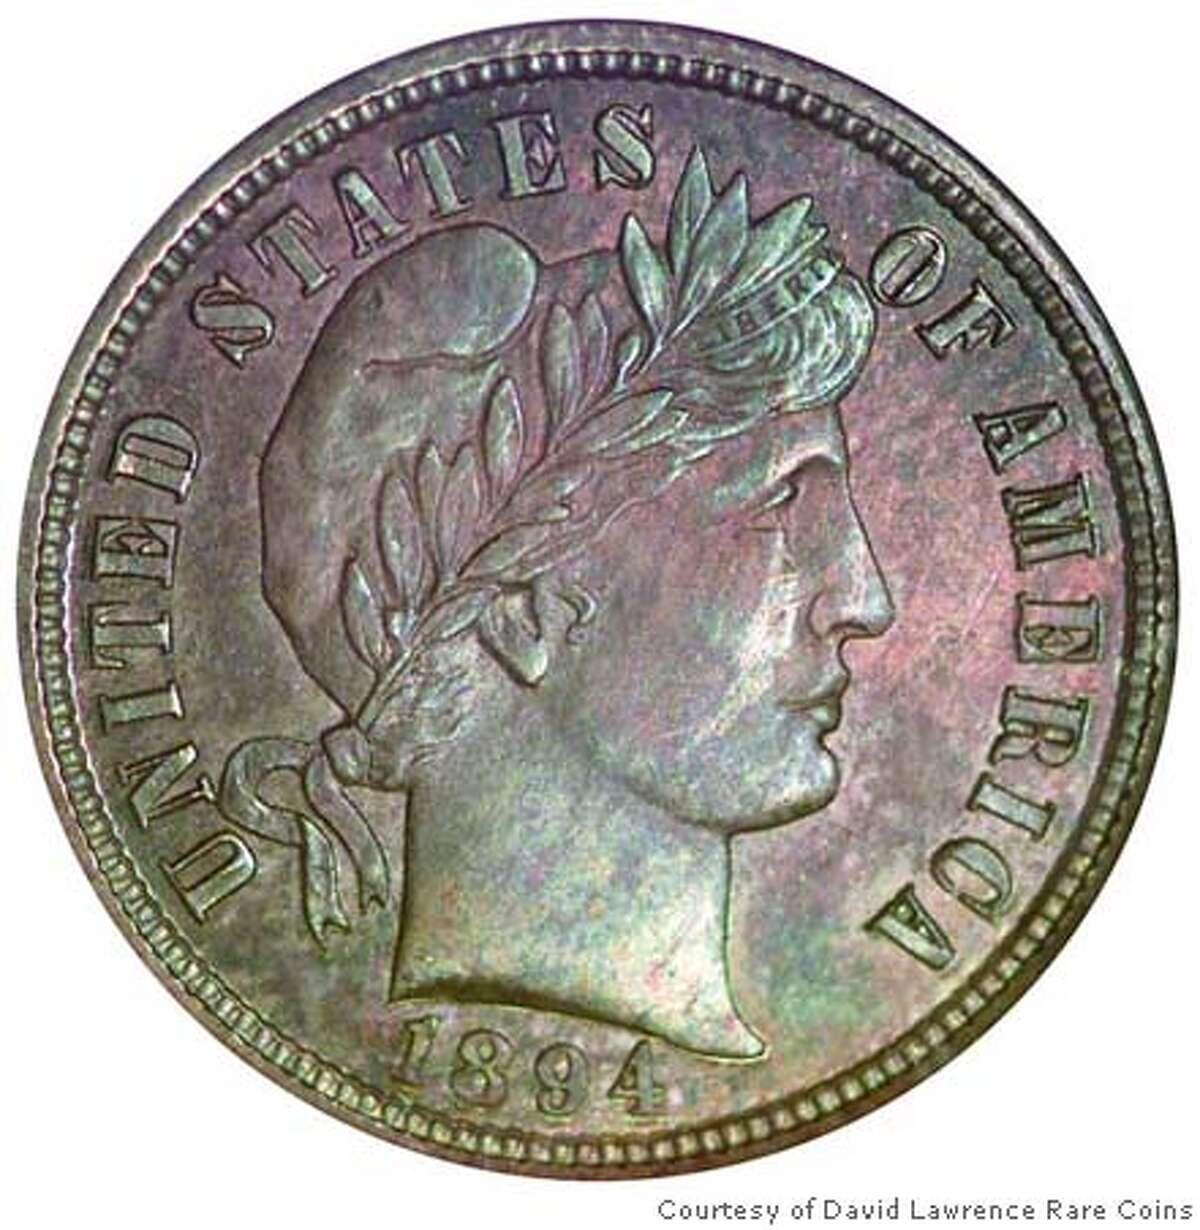 This 113-year old dime, one of only nine surviving examples made in 1894 at the San Francisco Mint, has been sold by an Oakland, California collector to a New York City banker for a record $1.9 million, according to John Feigenbaum of David Lawrence Rare Coins in Virginia Beach, Virginia who brokered the transaction and hand-carried the valuable coin cross country to its anonymous new owner. (Photo dated July 24, 2007 and courtesy of David Lawrence Rare Coins.) Photo credit: David Lawrence Rare Coins ------------------------